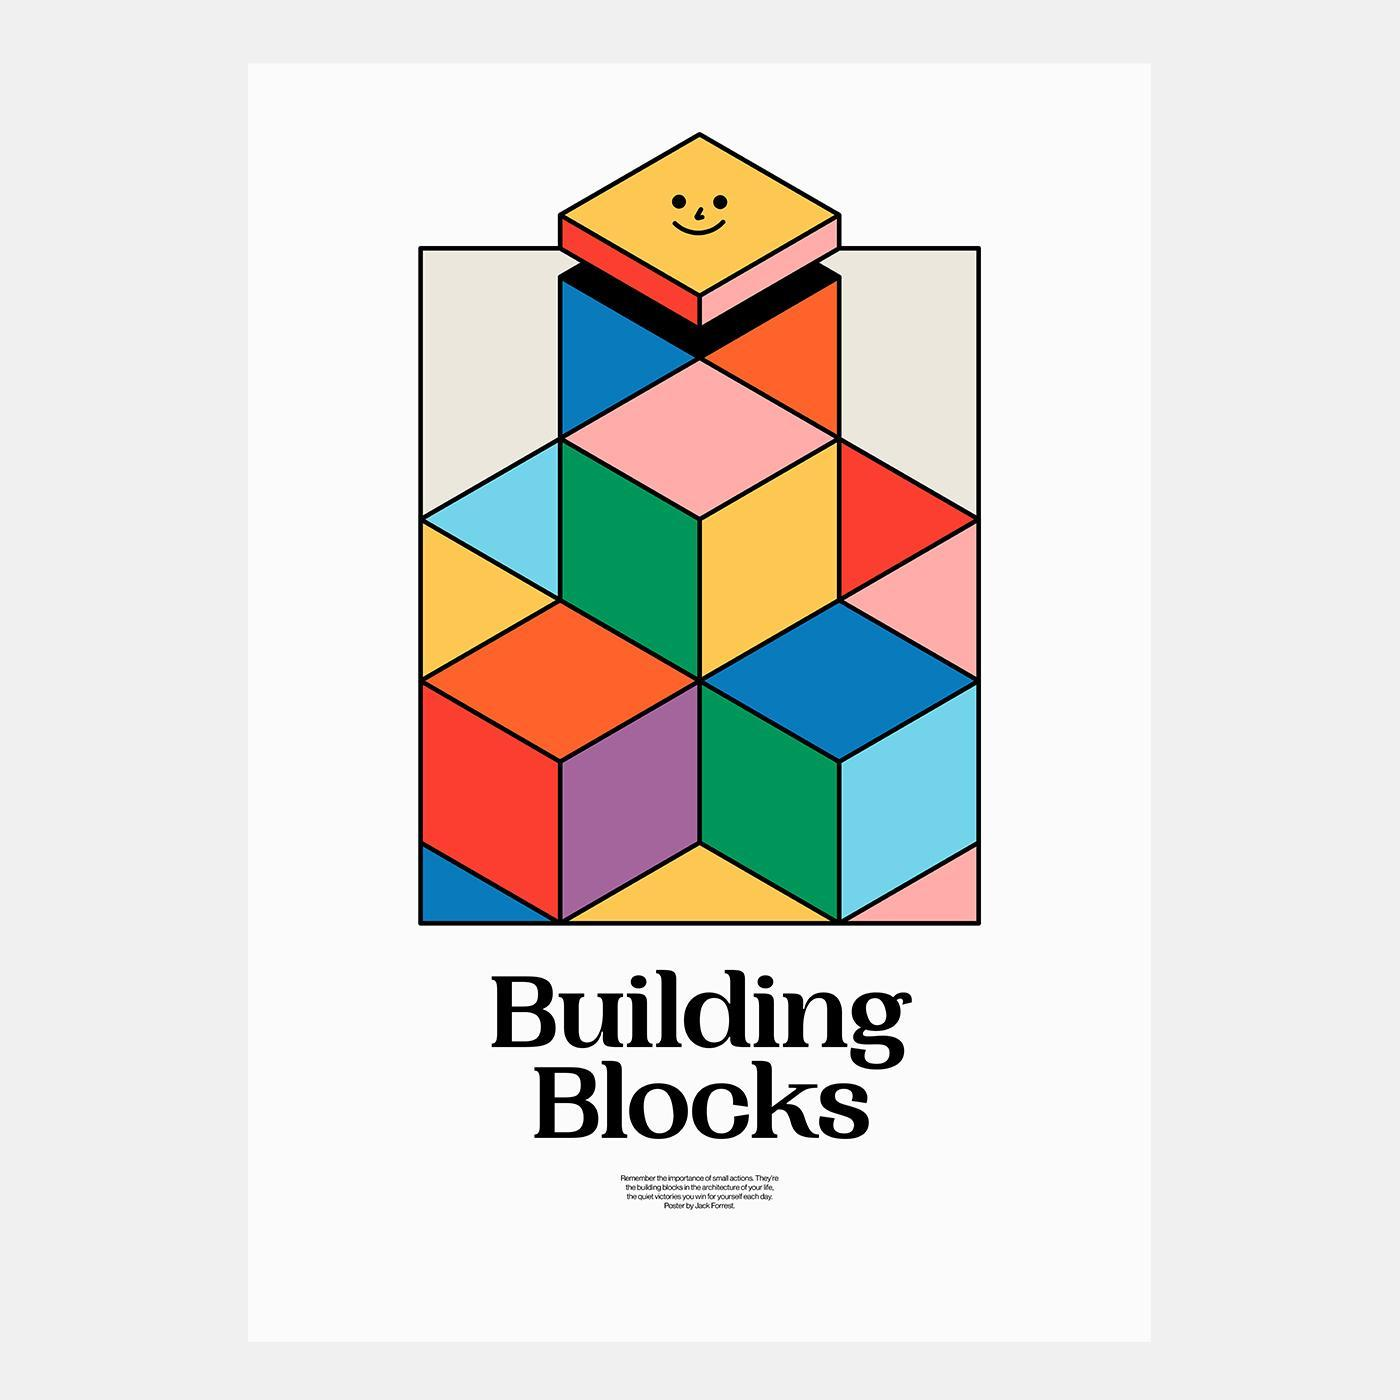 Jack Forrest - Building Blocks